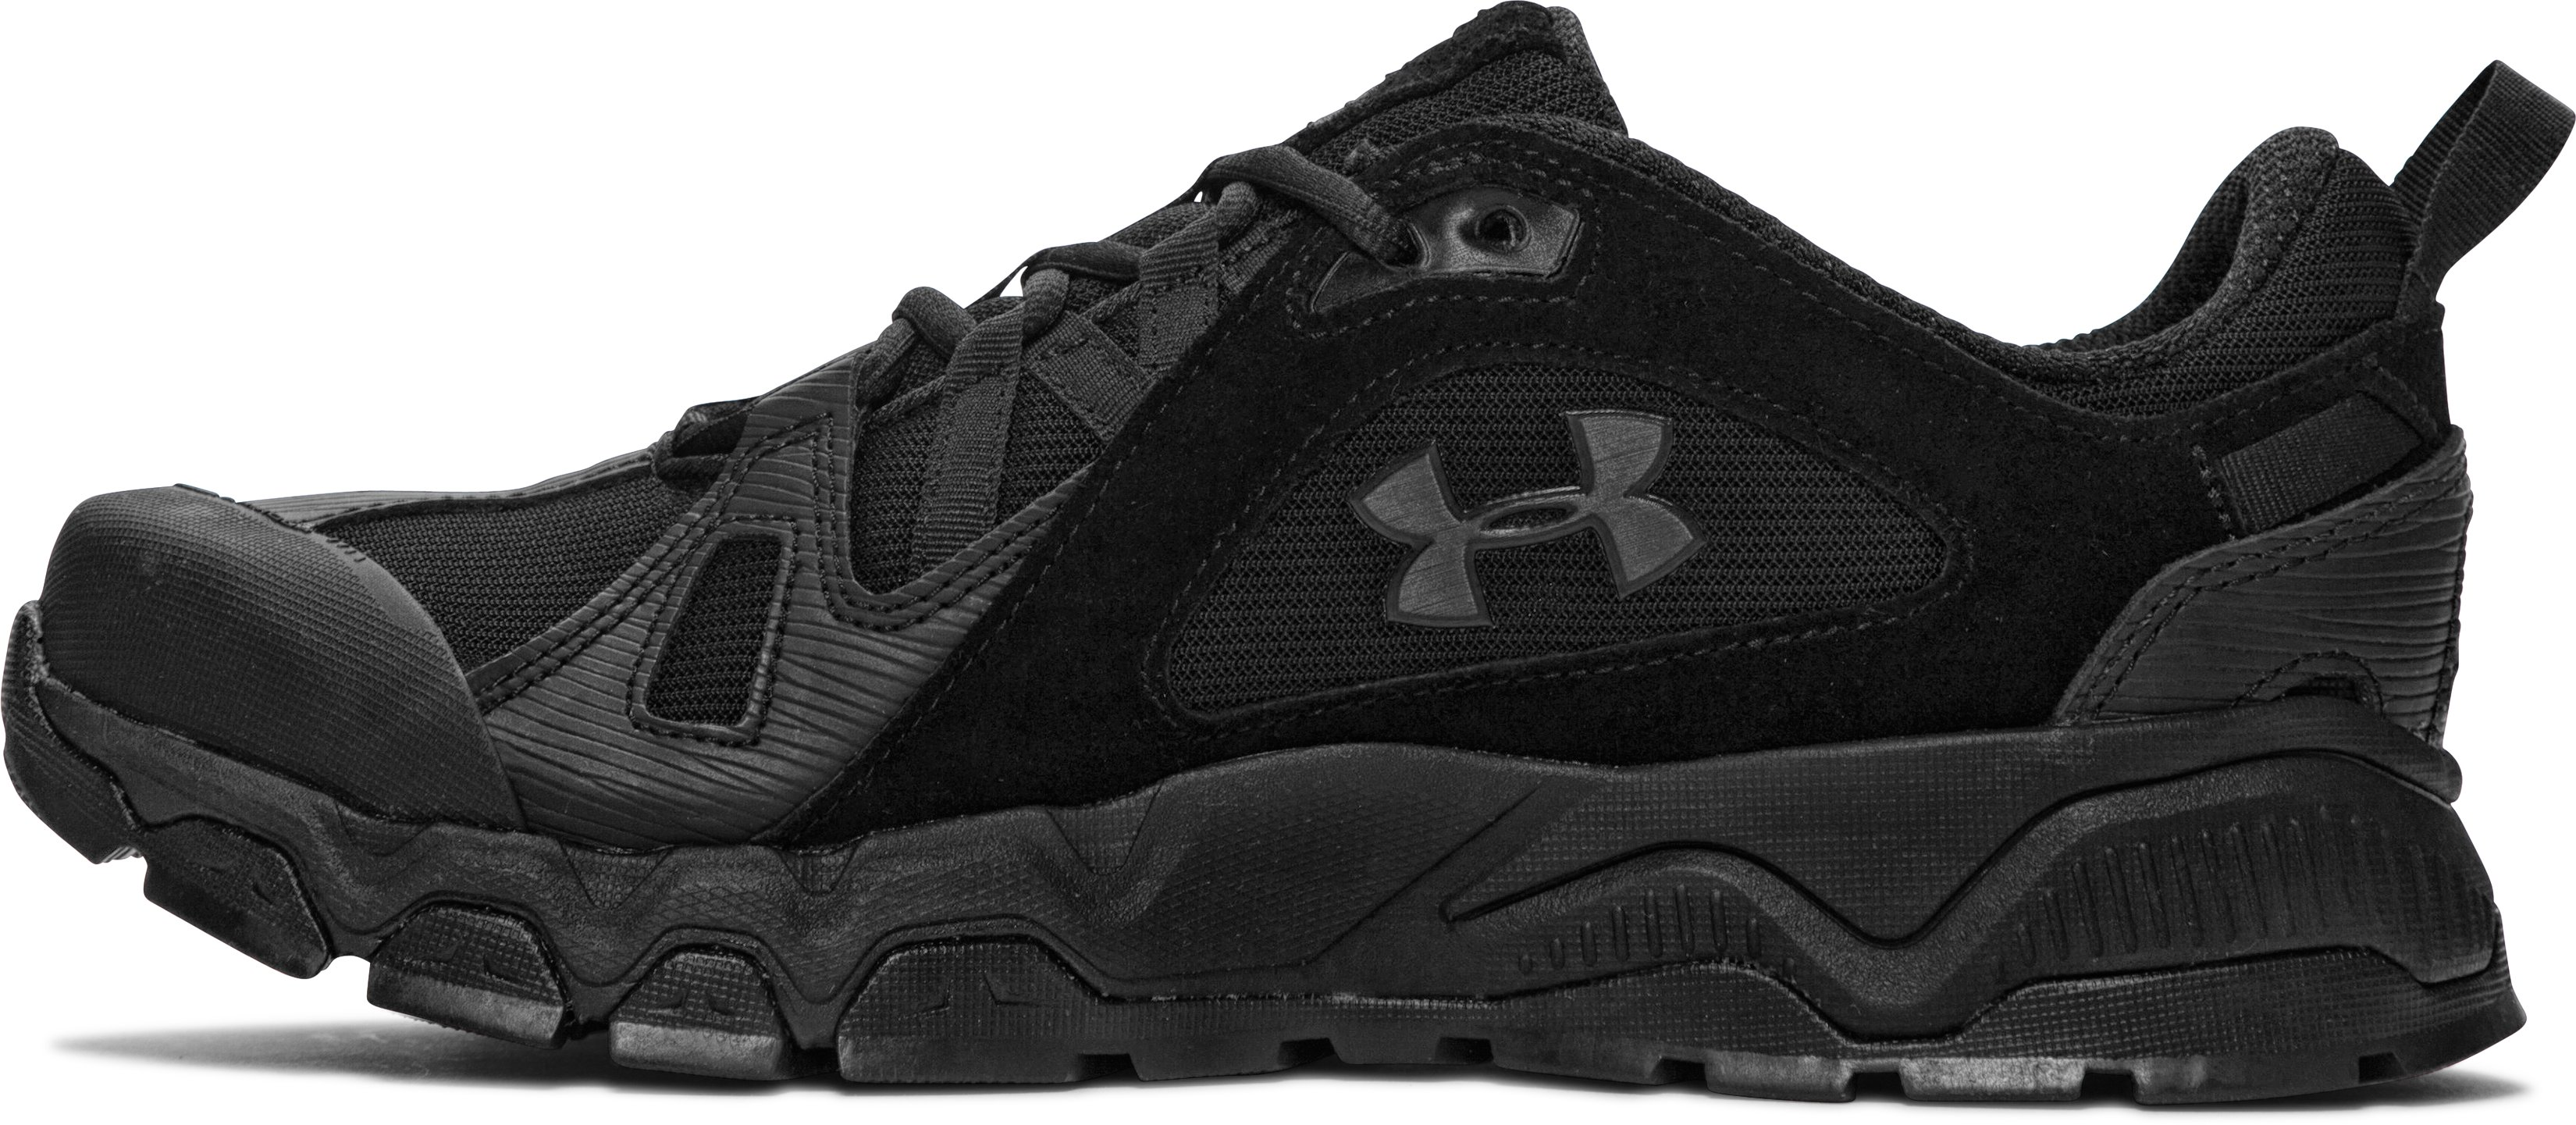 s ua chetco 2 0 tactical running shoes armour us